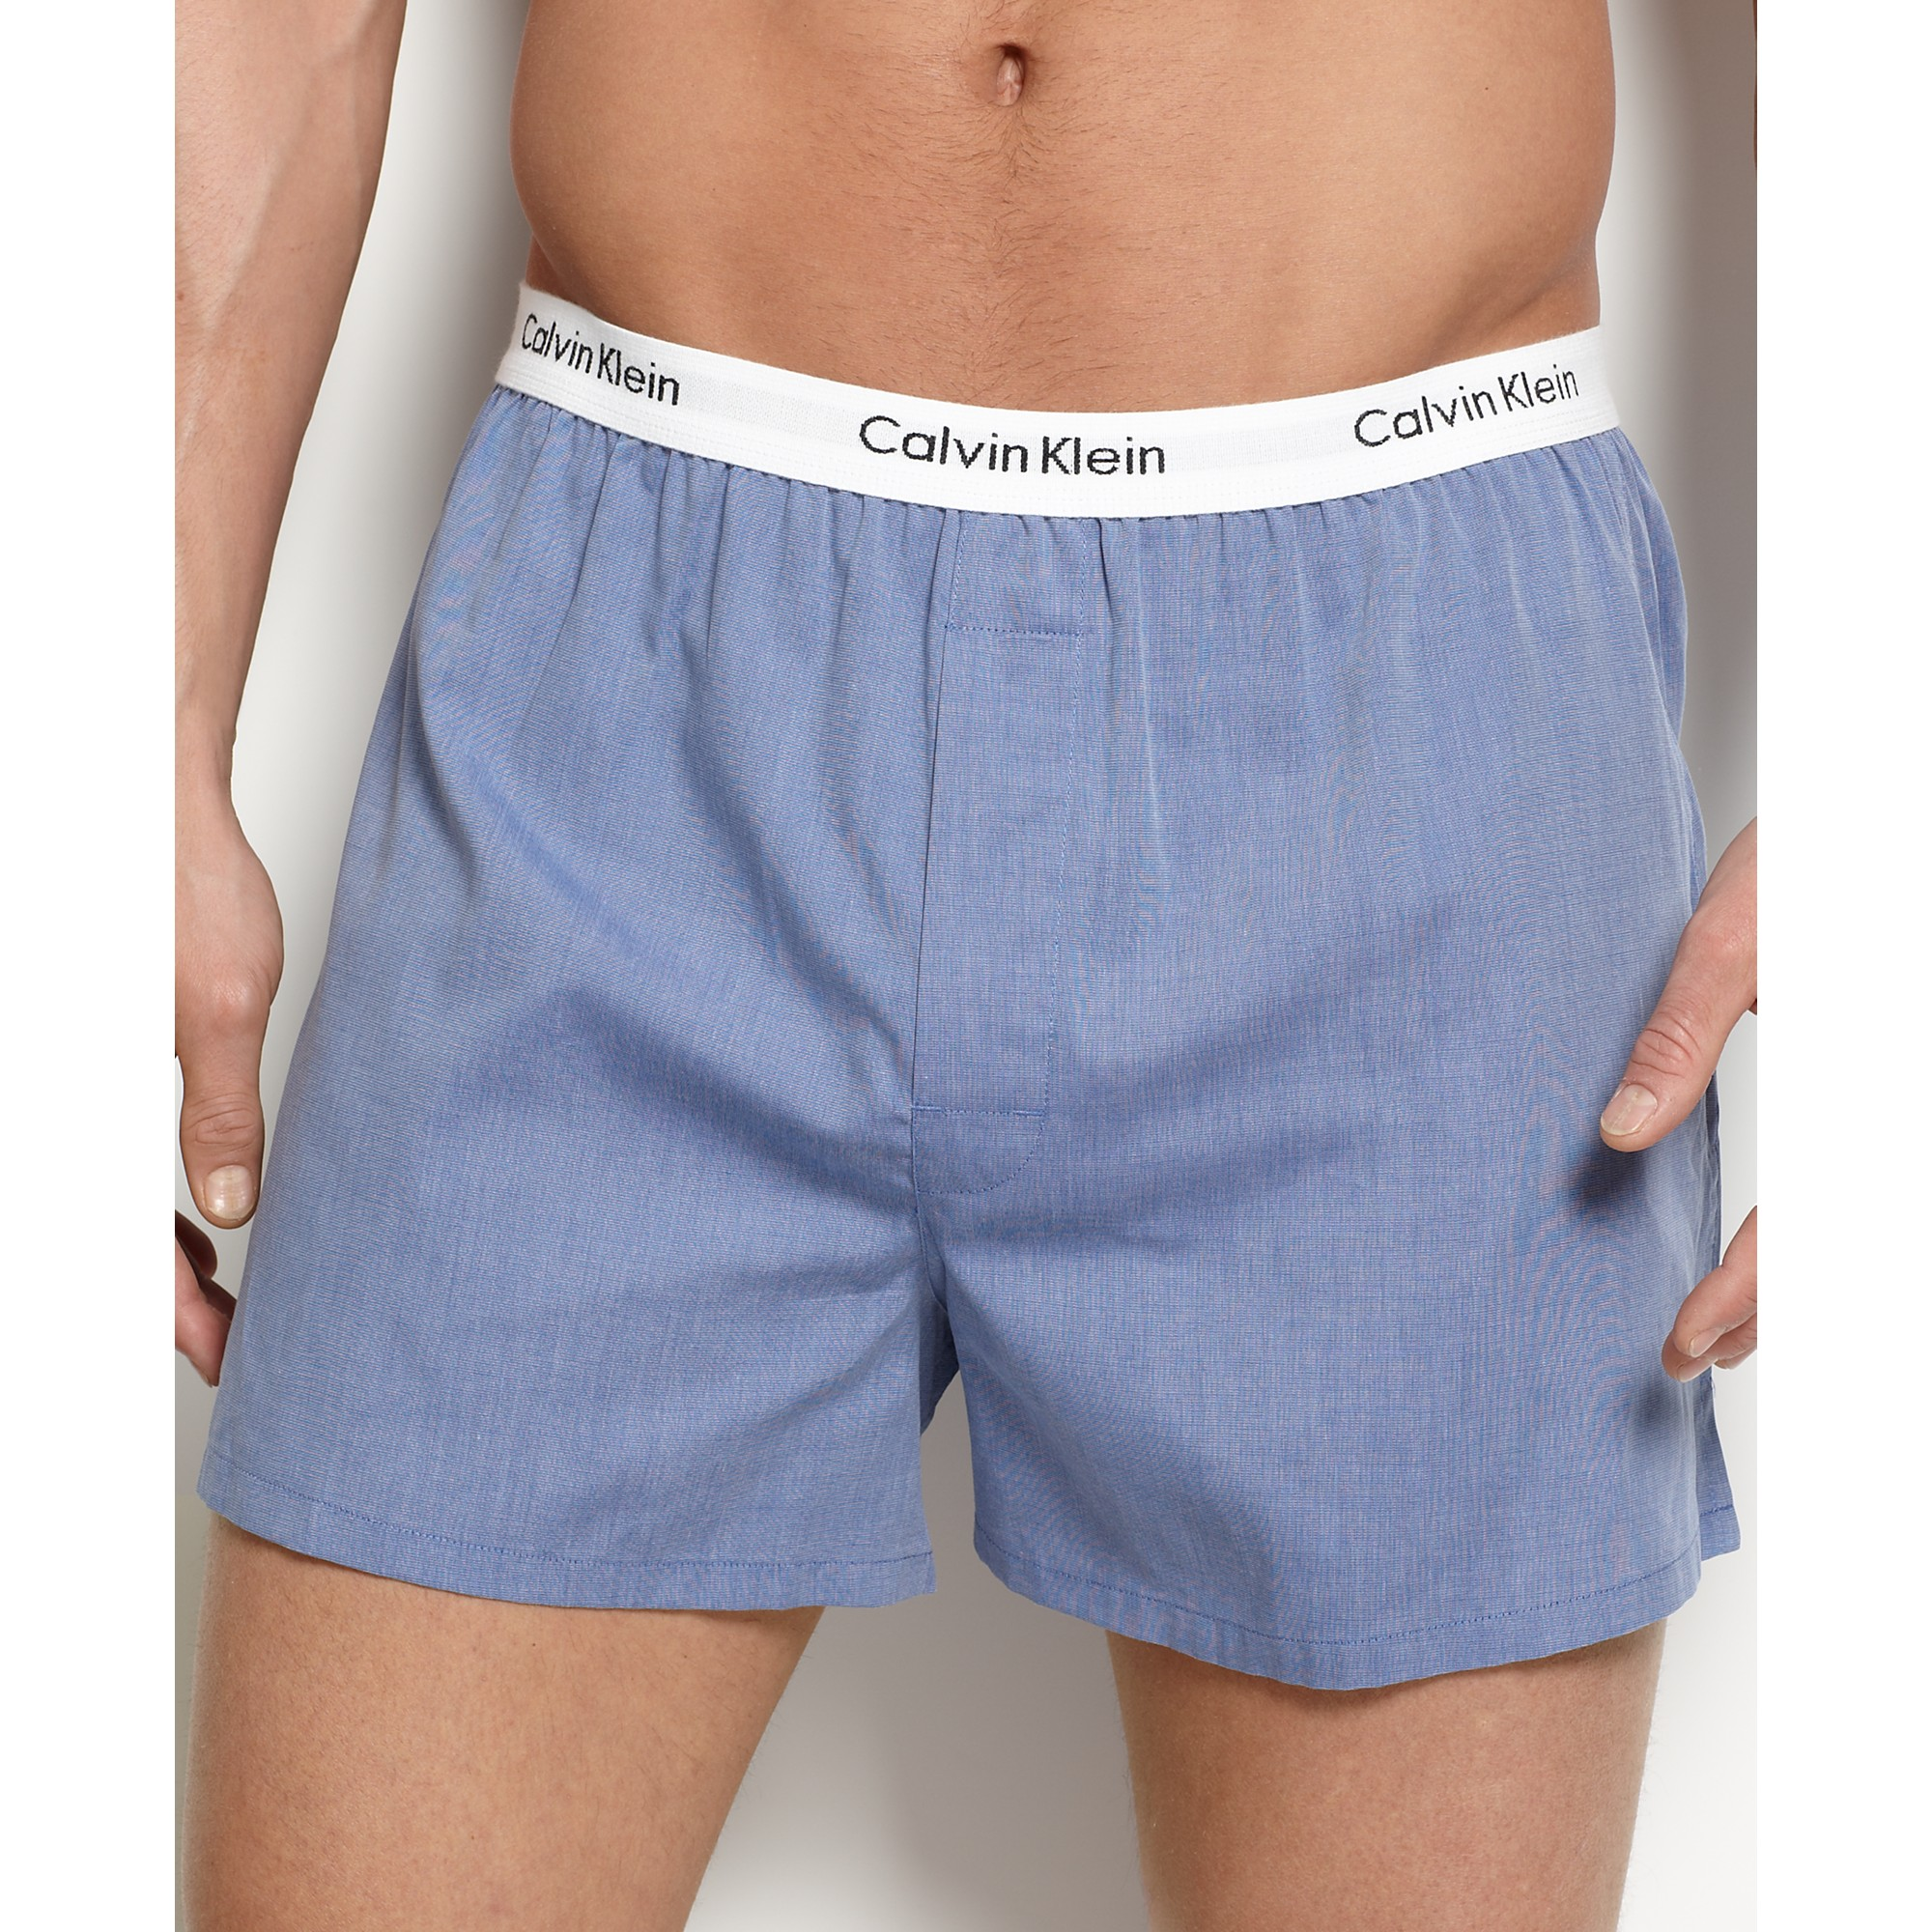 Lyst - Calvin Klein Solid Woven Boxers 3 Pack in White for Men 22675c67b0a